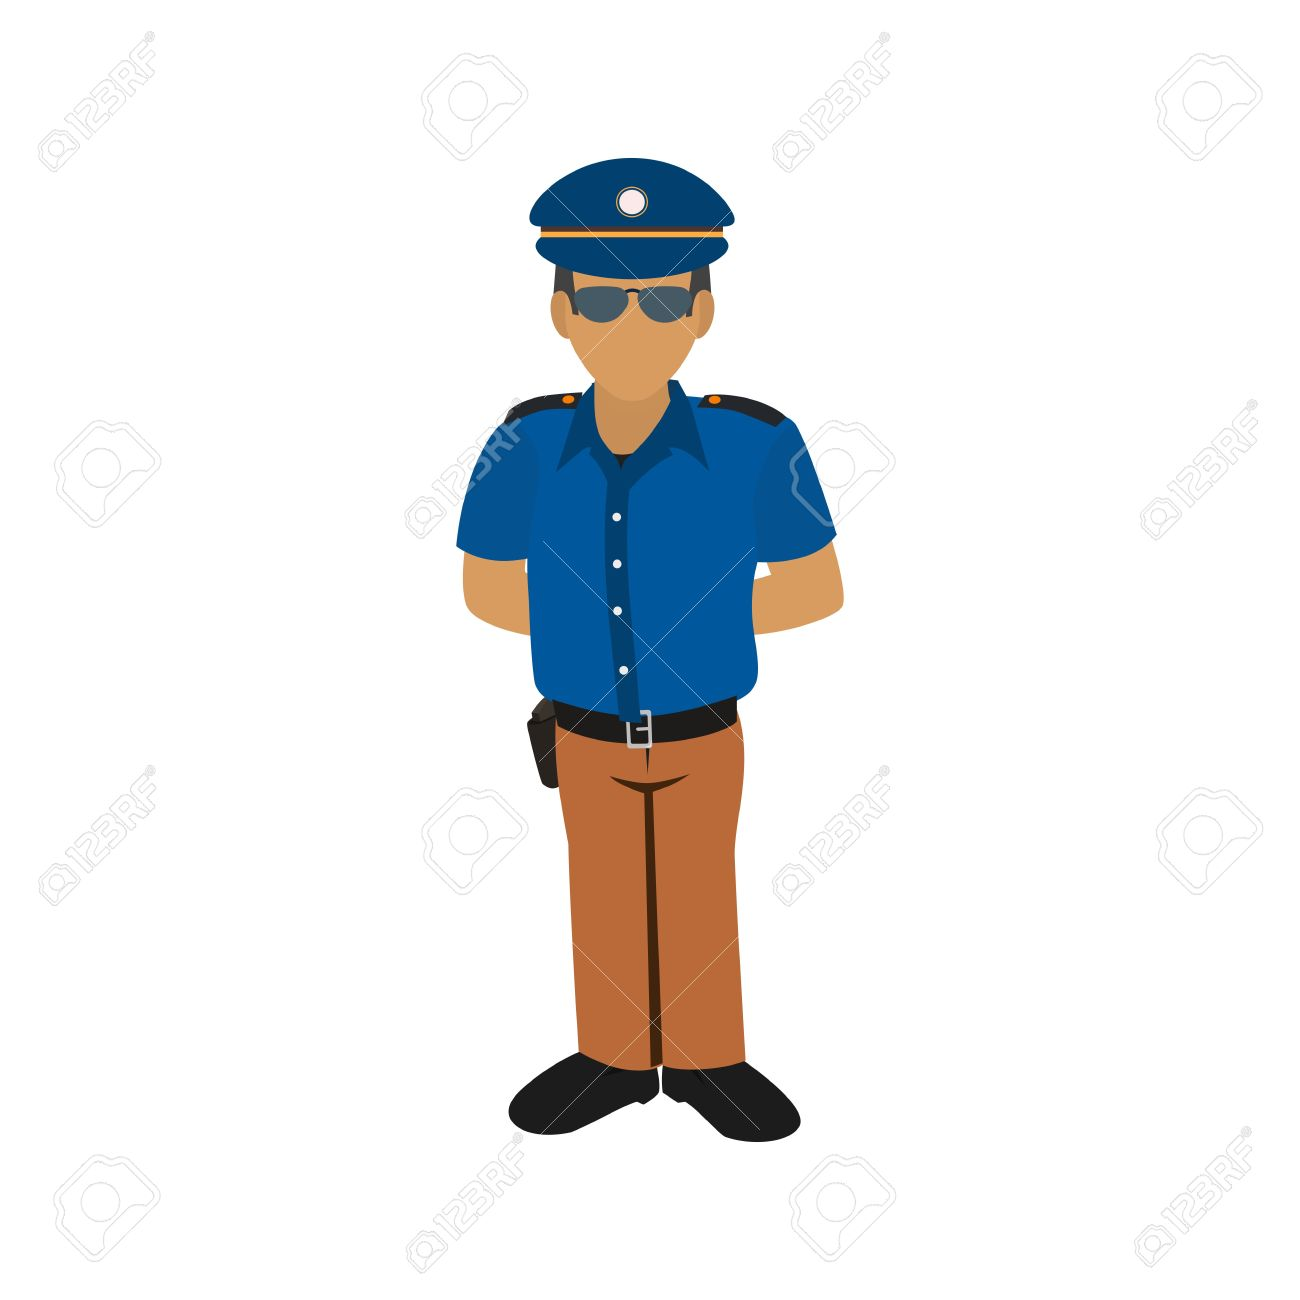 Security guard clipart icon clip freeuse download 48,619 Security Guard Cliparts, Stock Vector And Royalty Free ... clip freeuse download